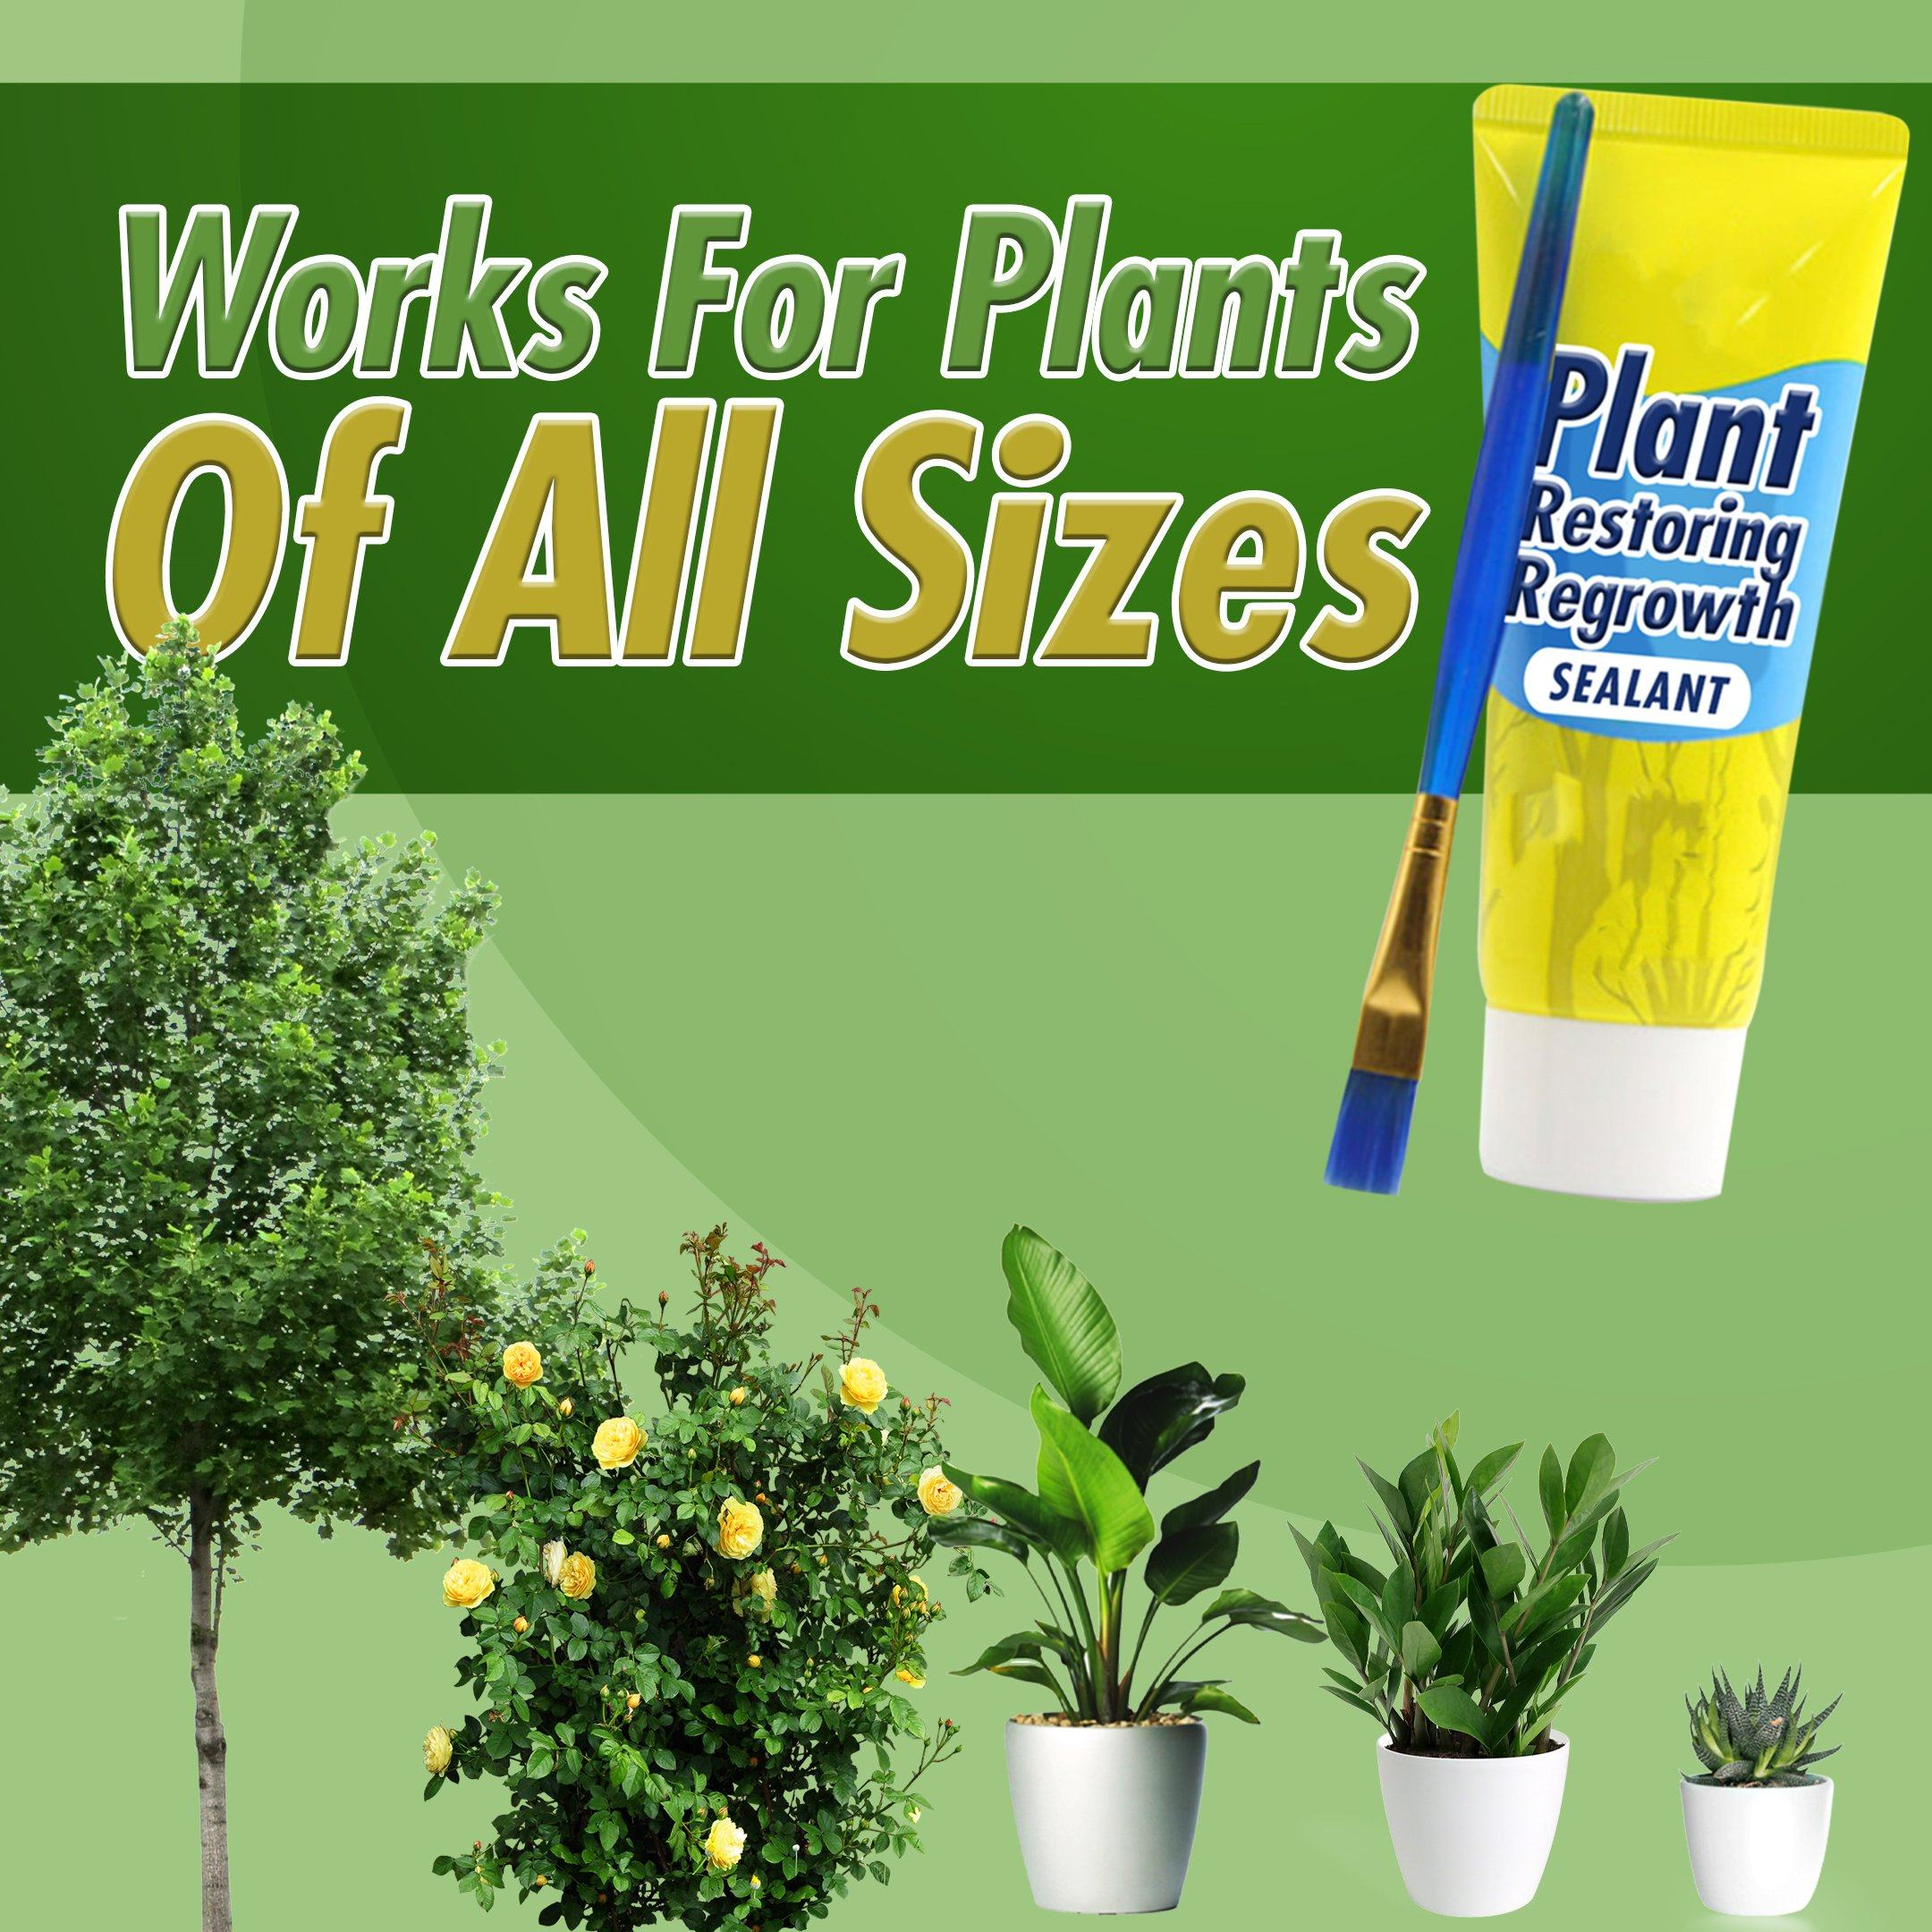 Plant Restoring Regrowth Sealant